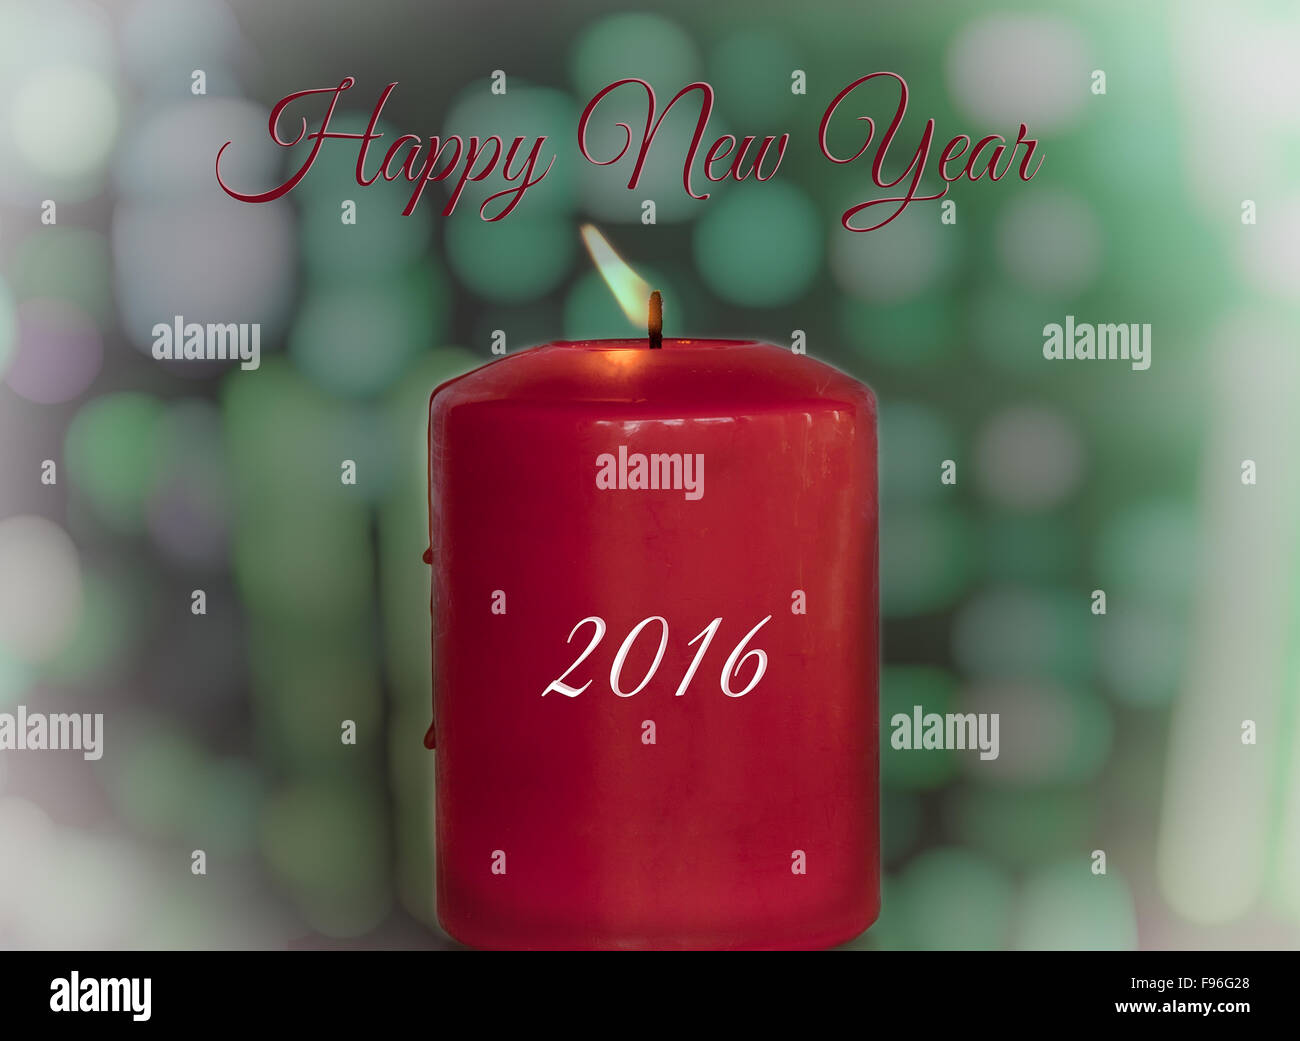 Happy New Year Greeting card with lit candle and the new year 2016. - Stock Image